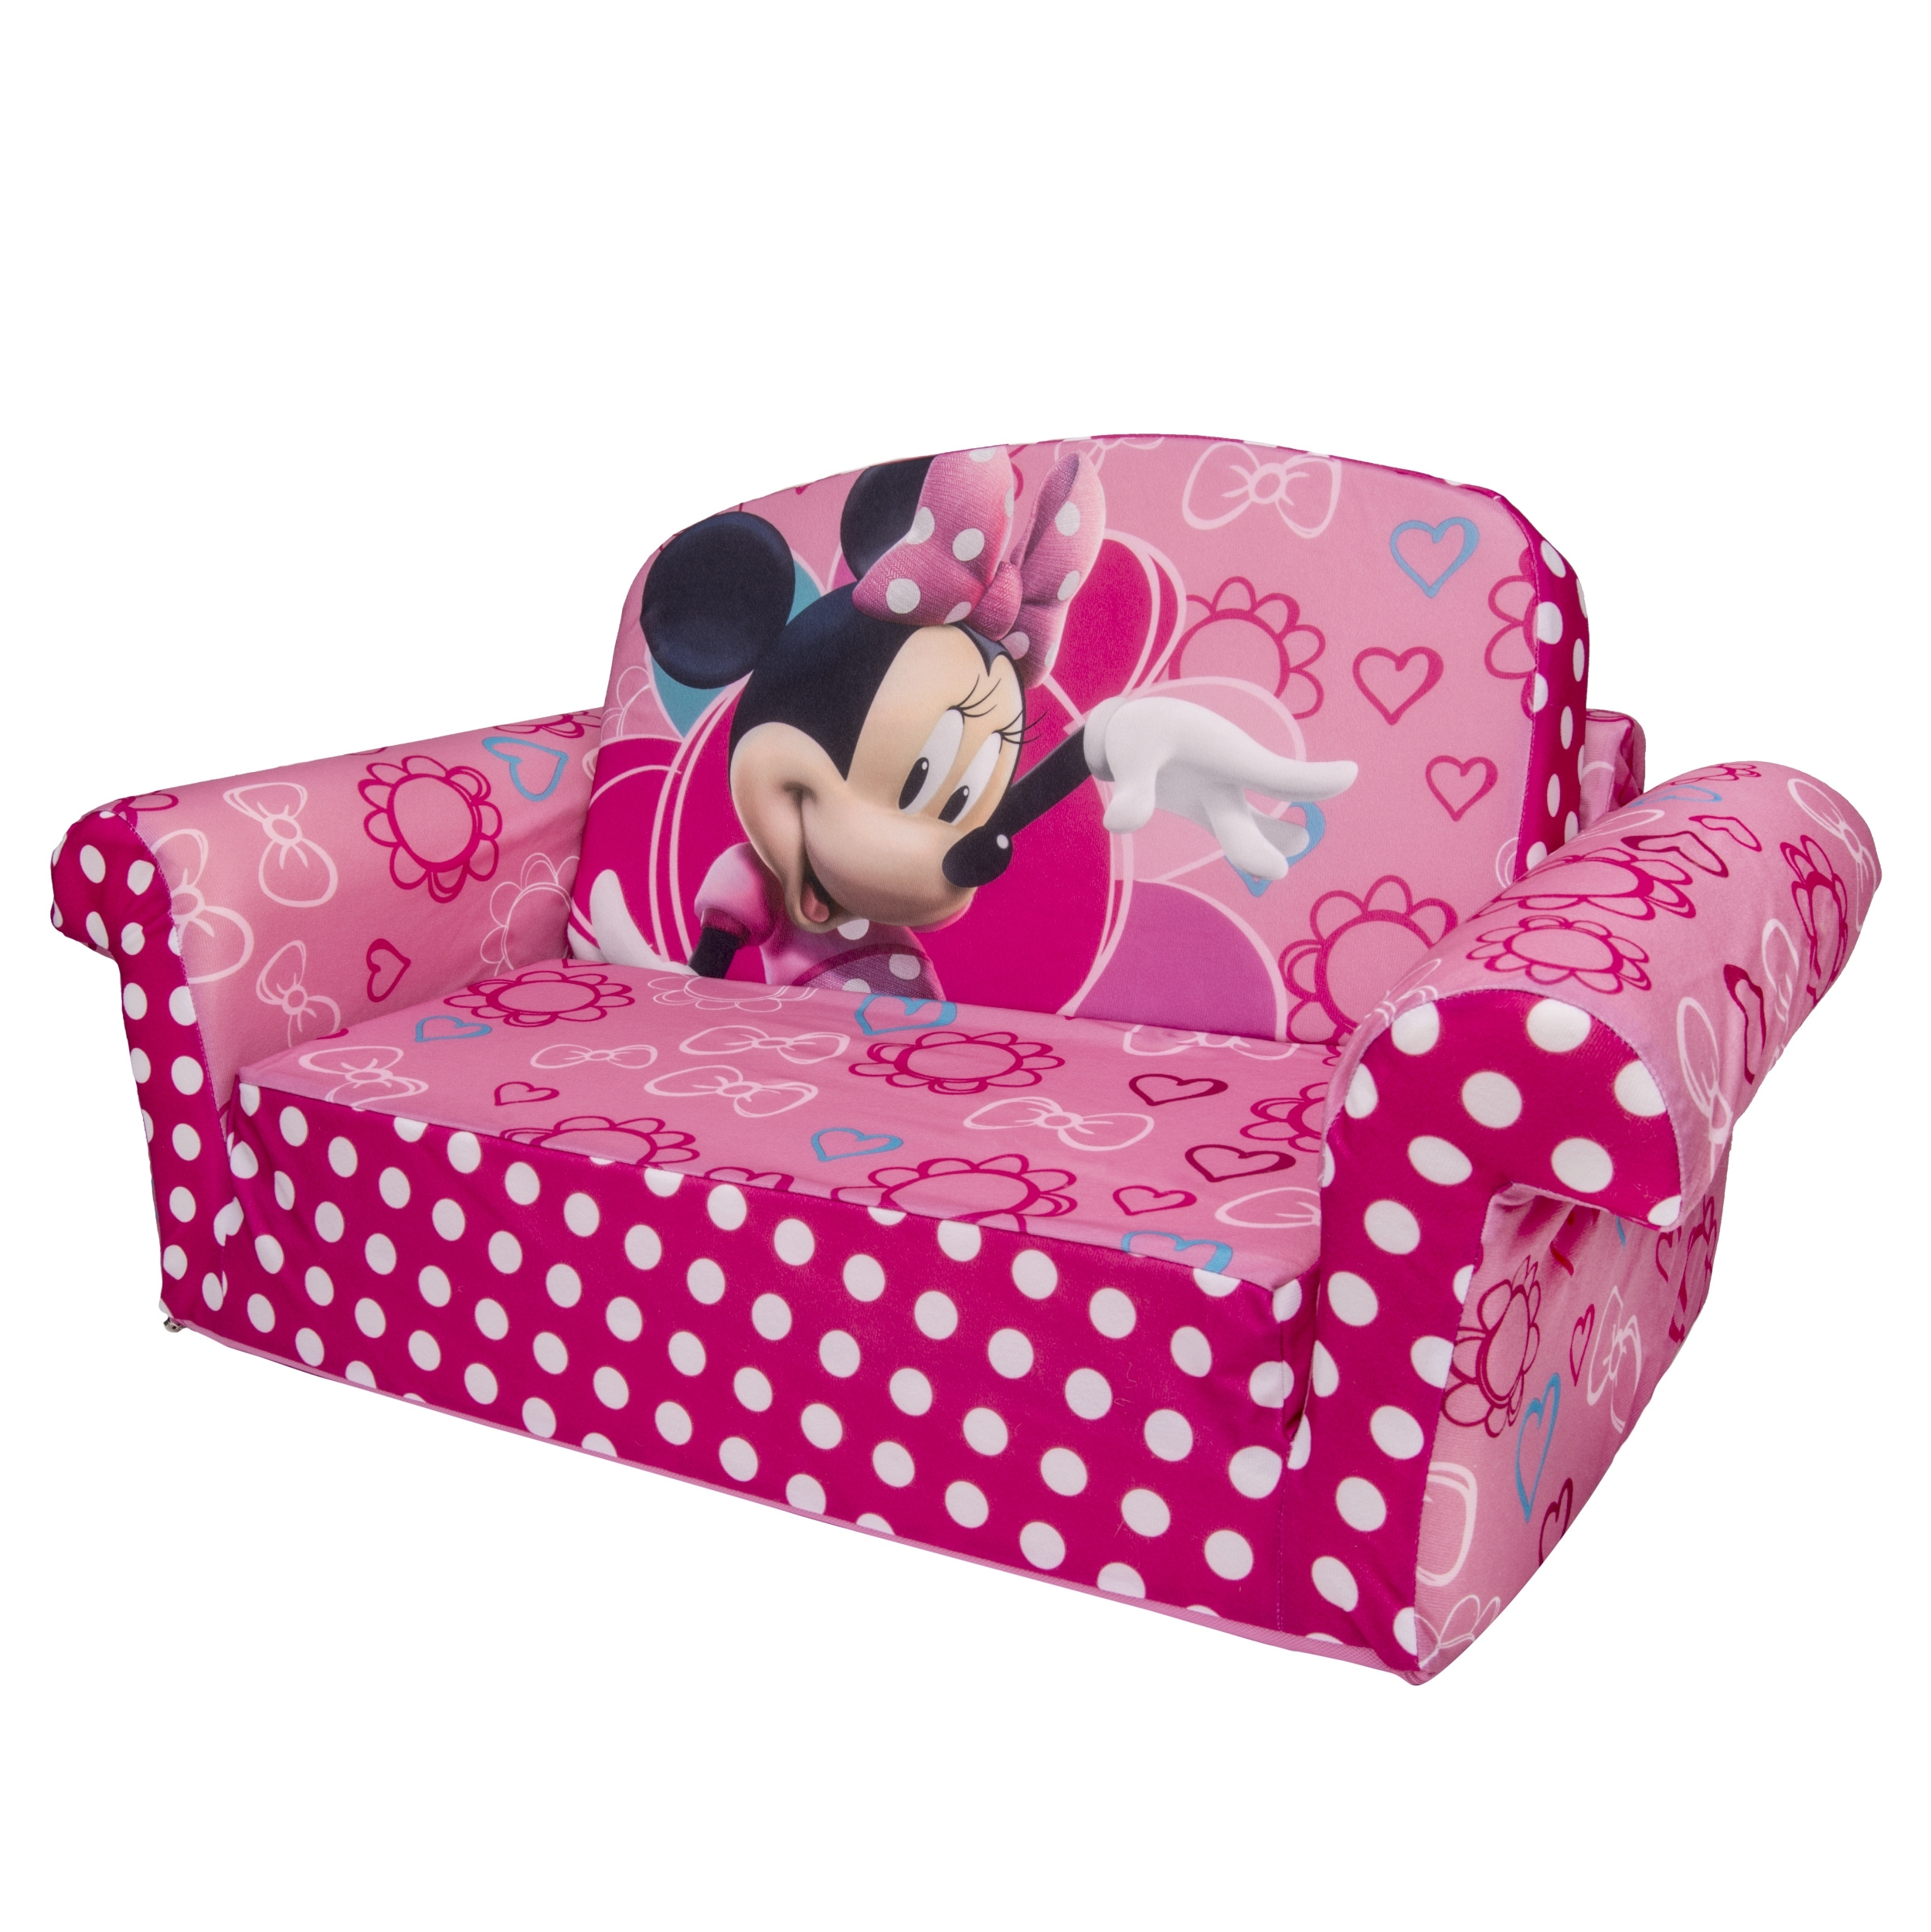 Well Liked Marshmallow Furniture, Children's 2 In 1 Flip Open Foam Sofa Within Disney Sofa Chairs (View 19 of 20)